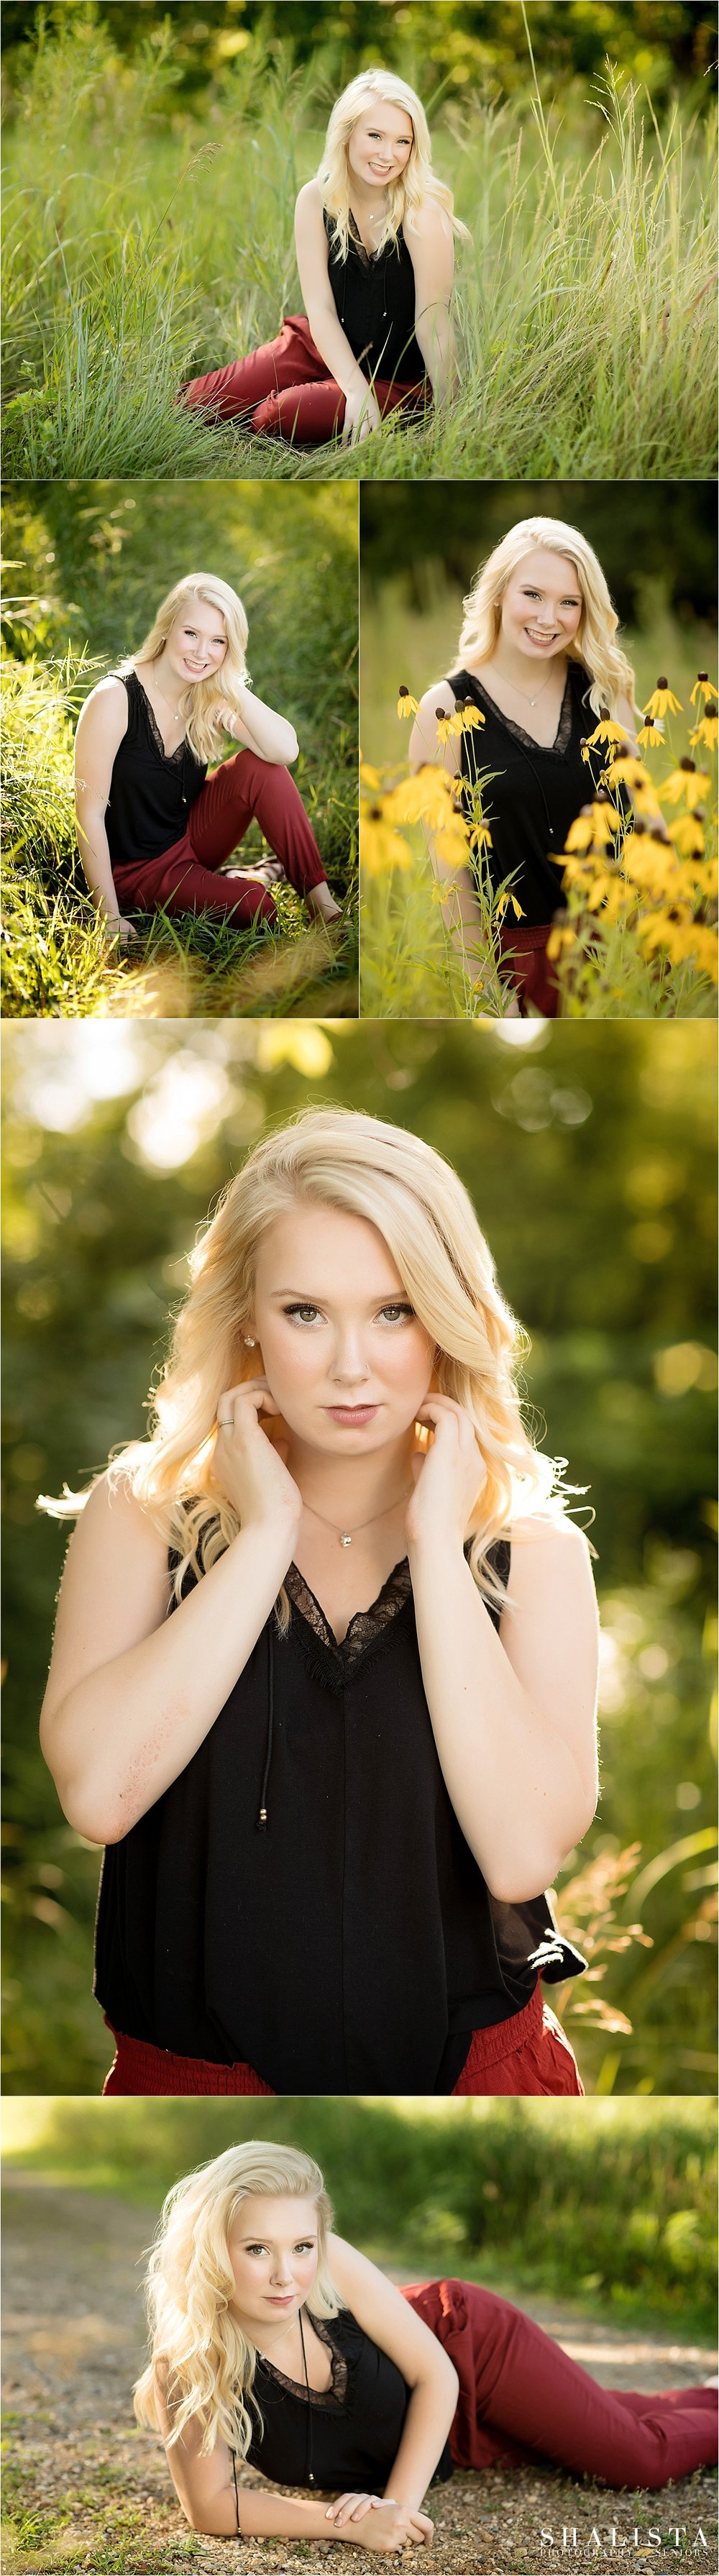 Beautiful summer senior girl photography